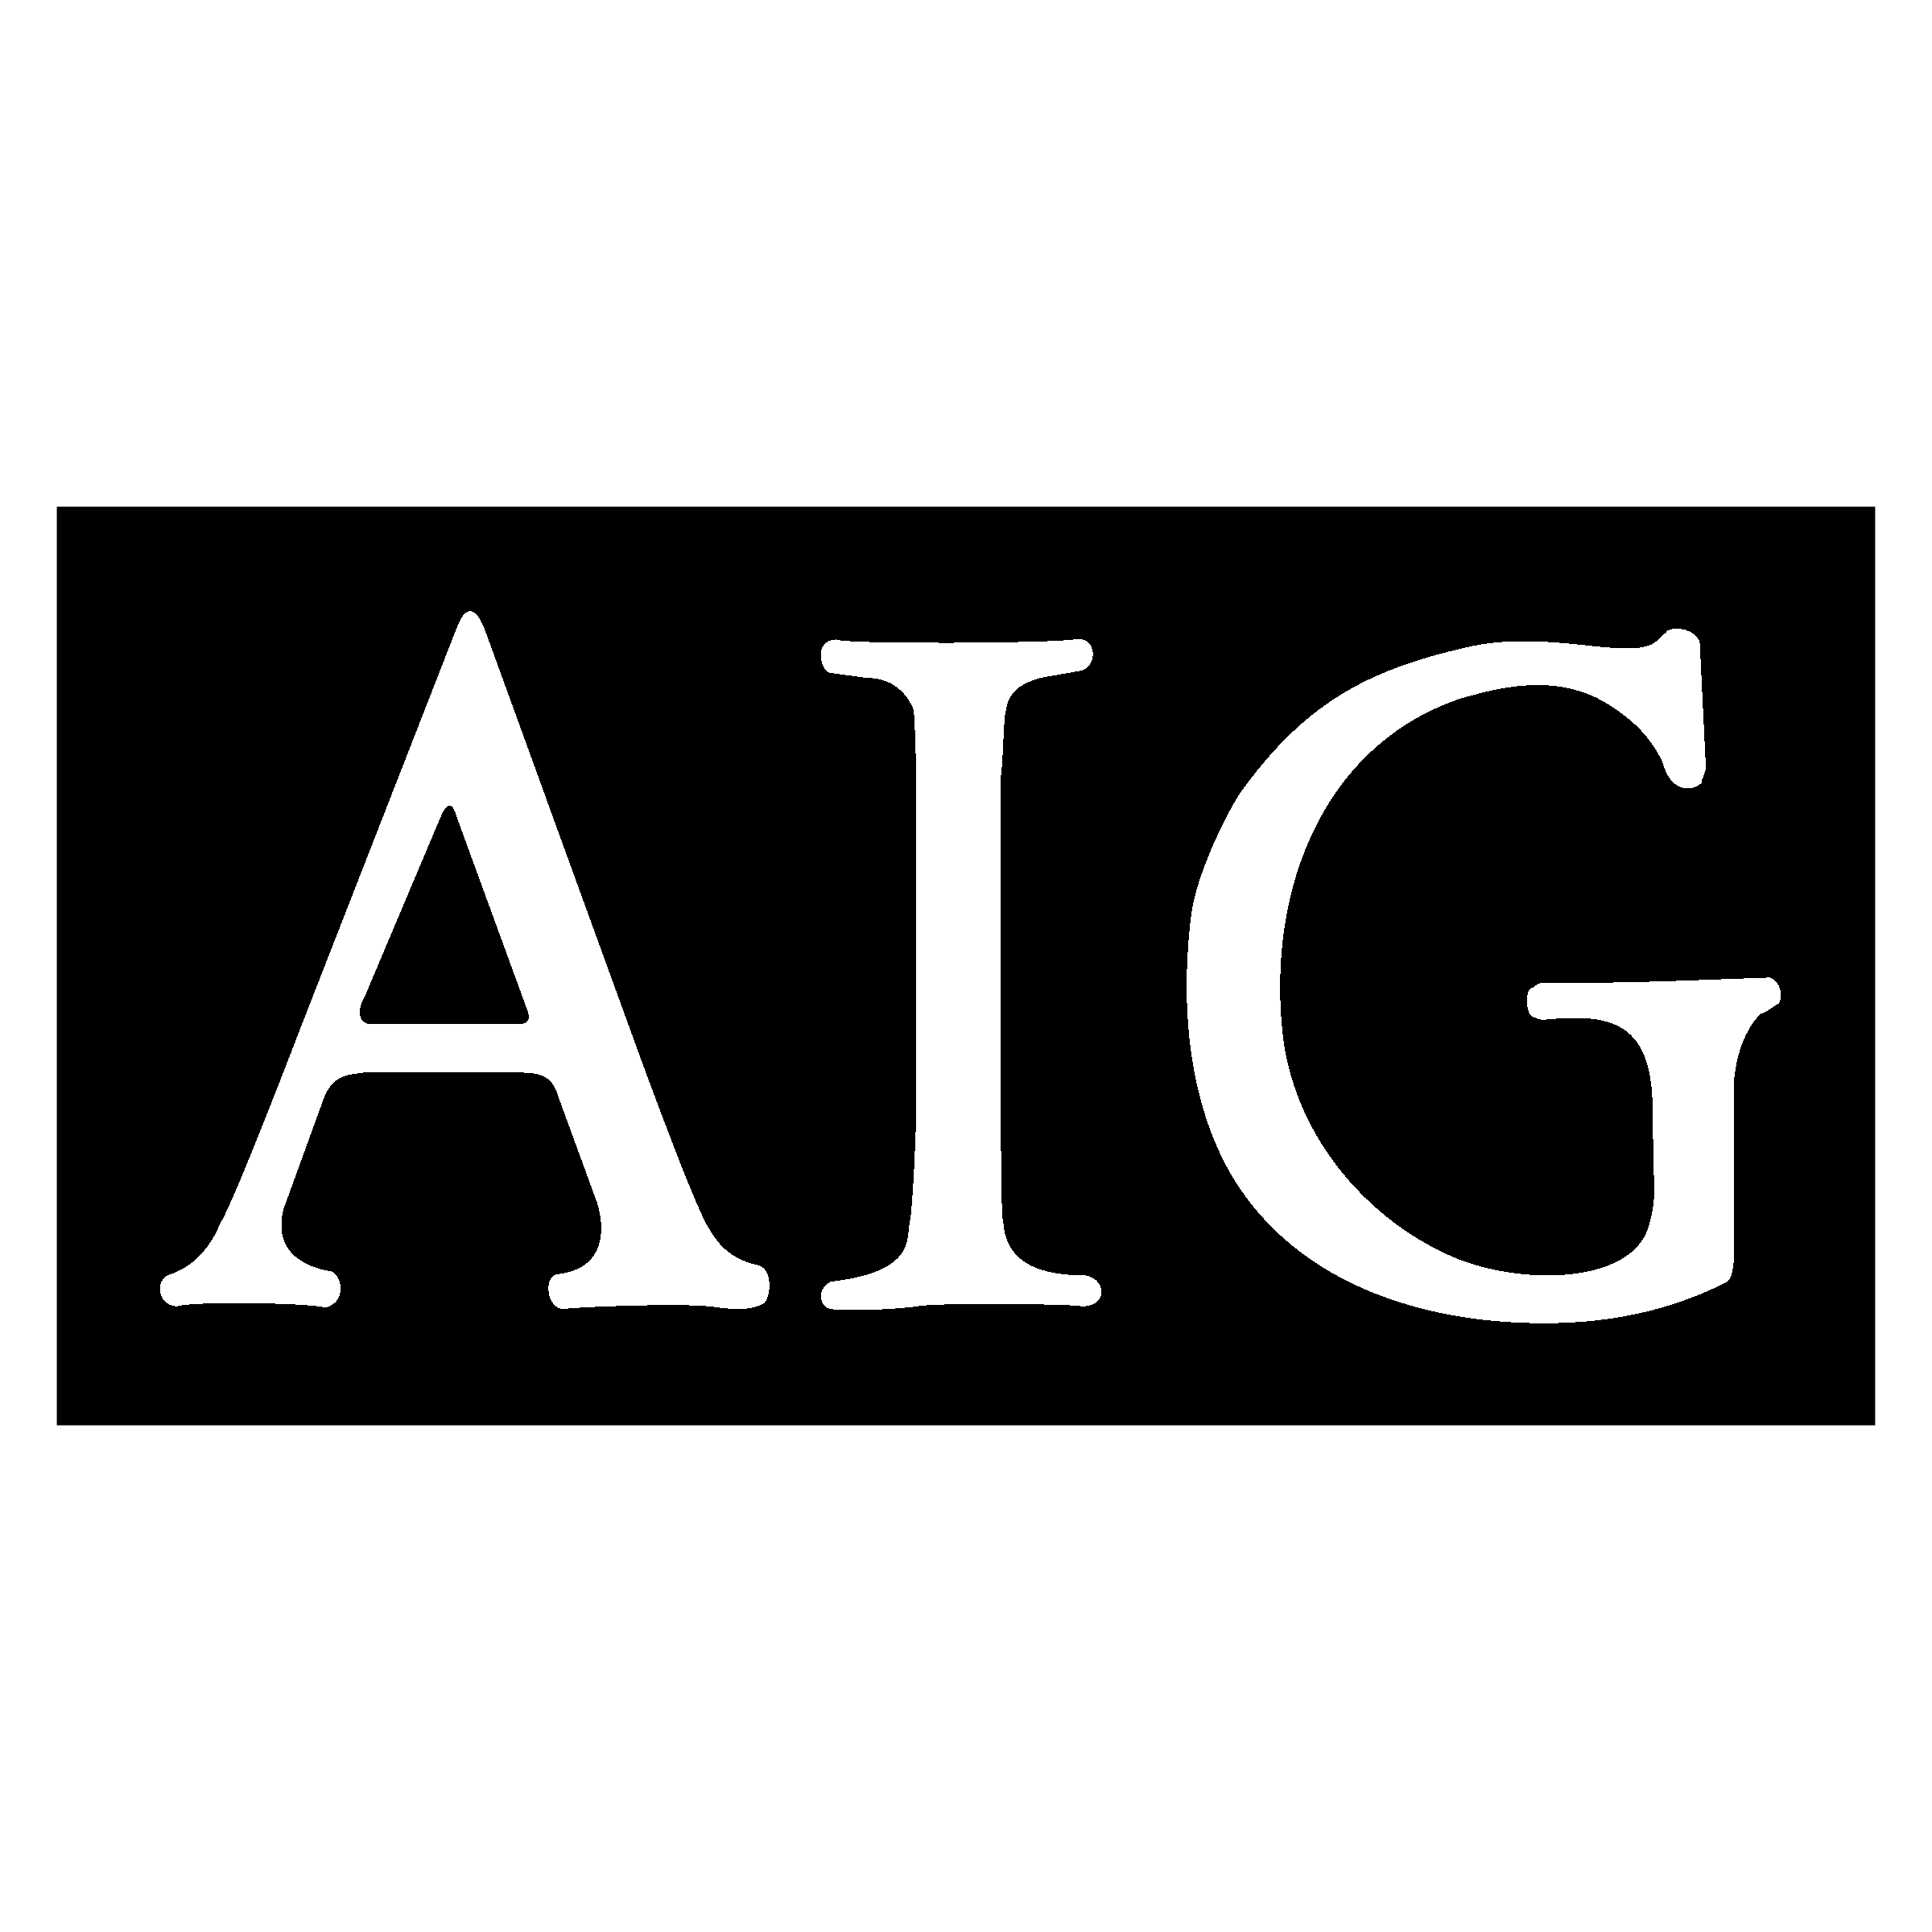 AIG Logo PNG Transparent & SVG Vector.